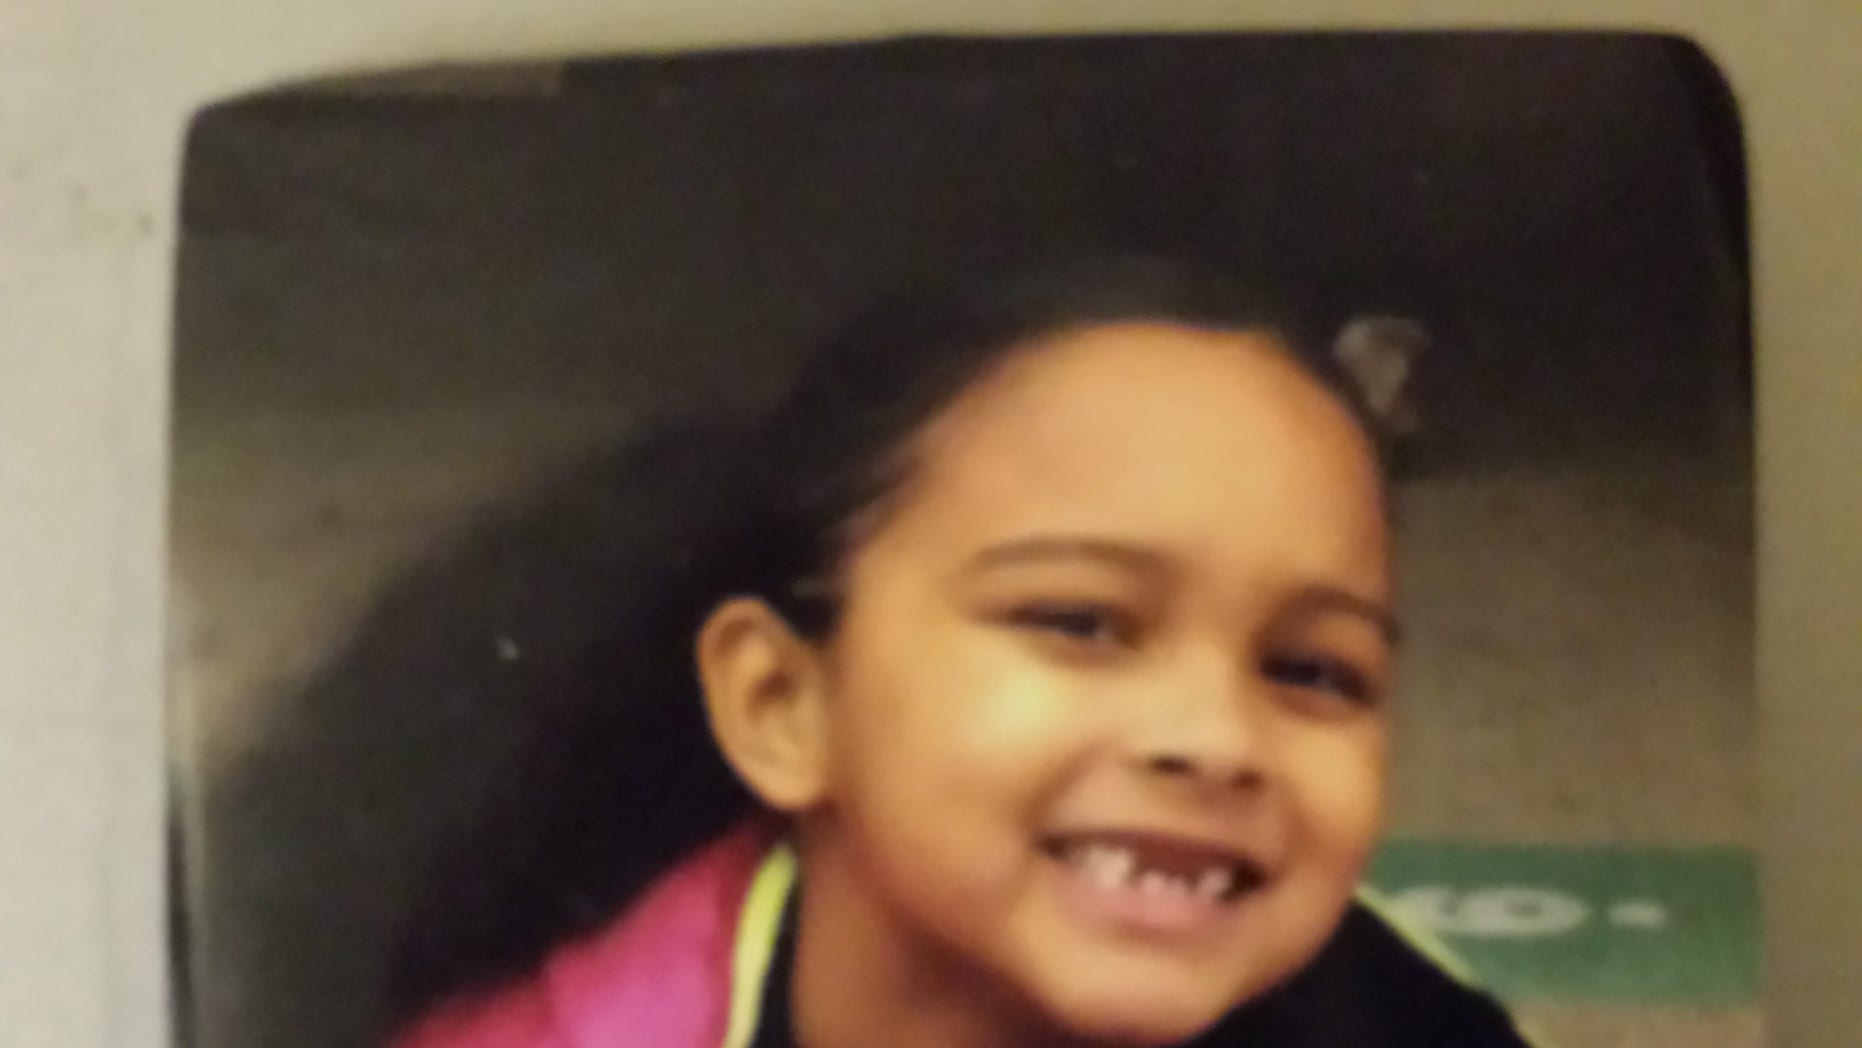 The burned body of Jadianna Larsen, 6, was found 10 hours before her reported disappearance. (Sacramento County Sheriff's Department)